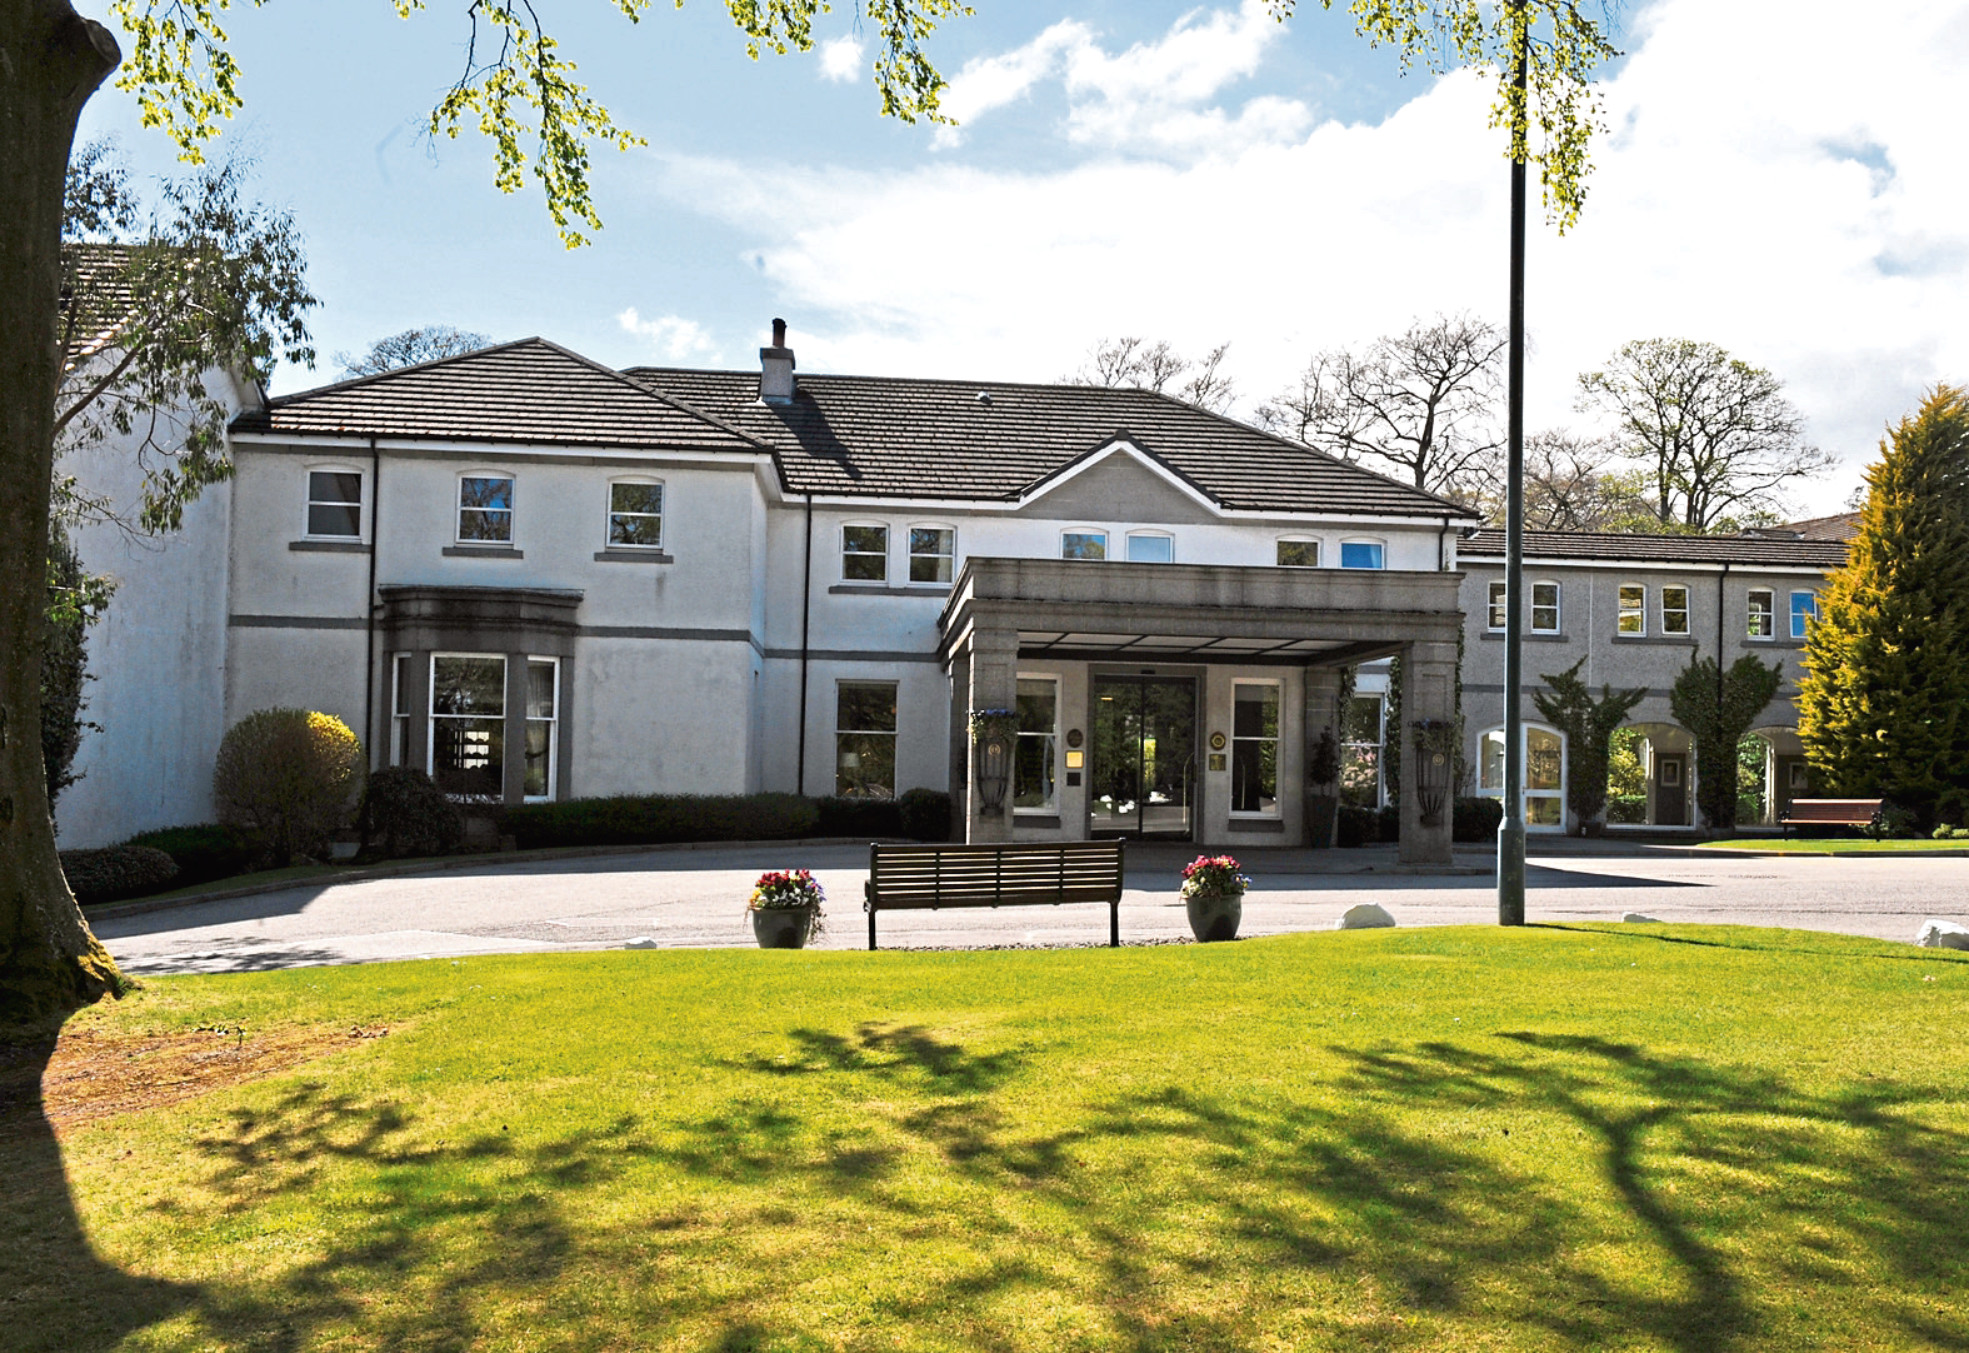 The event took place at the Marcliffe Hotel